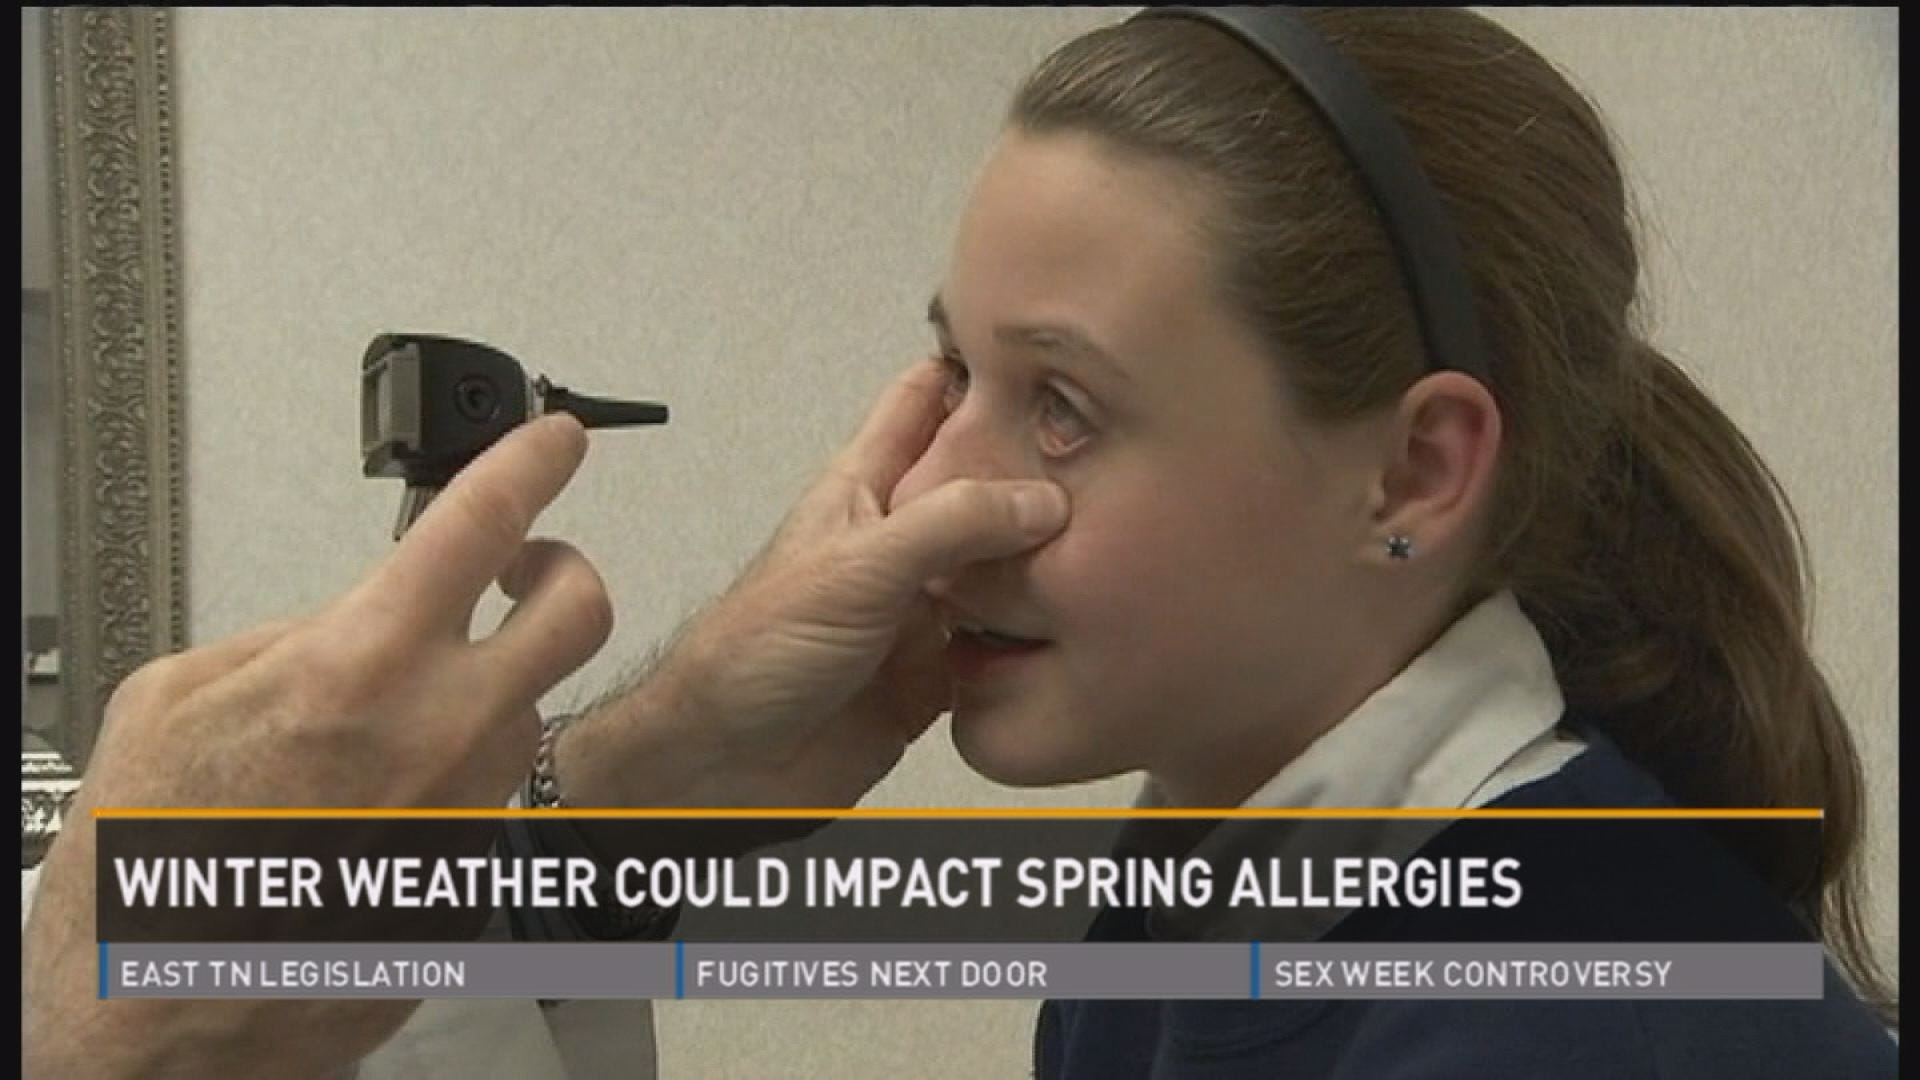 Winter weather could impact spring allergies